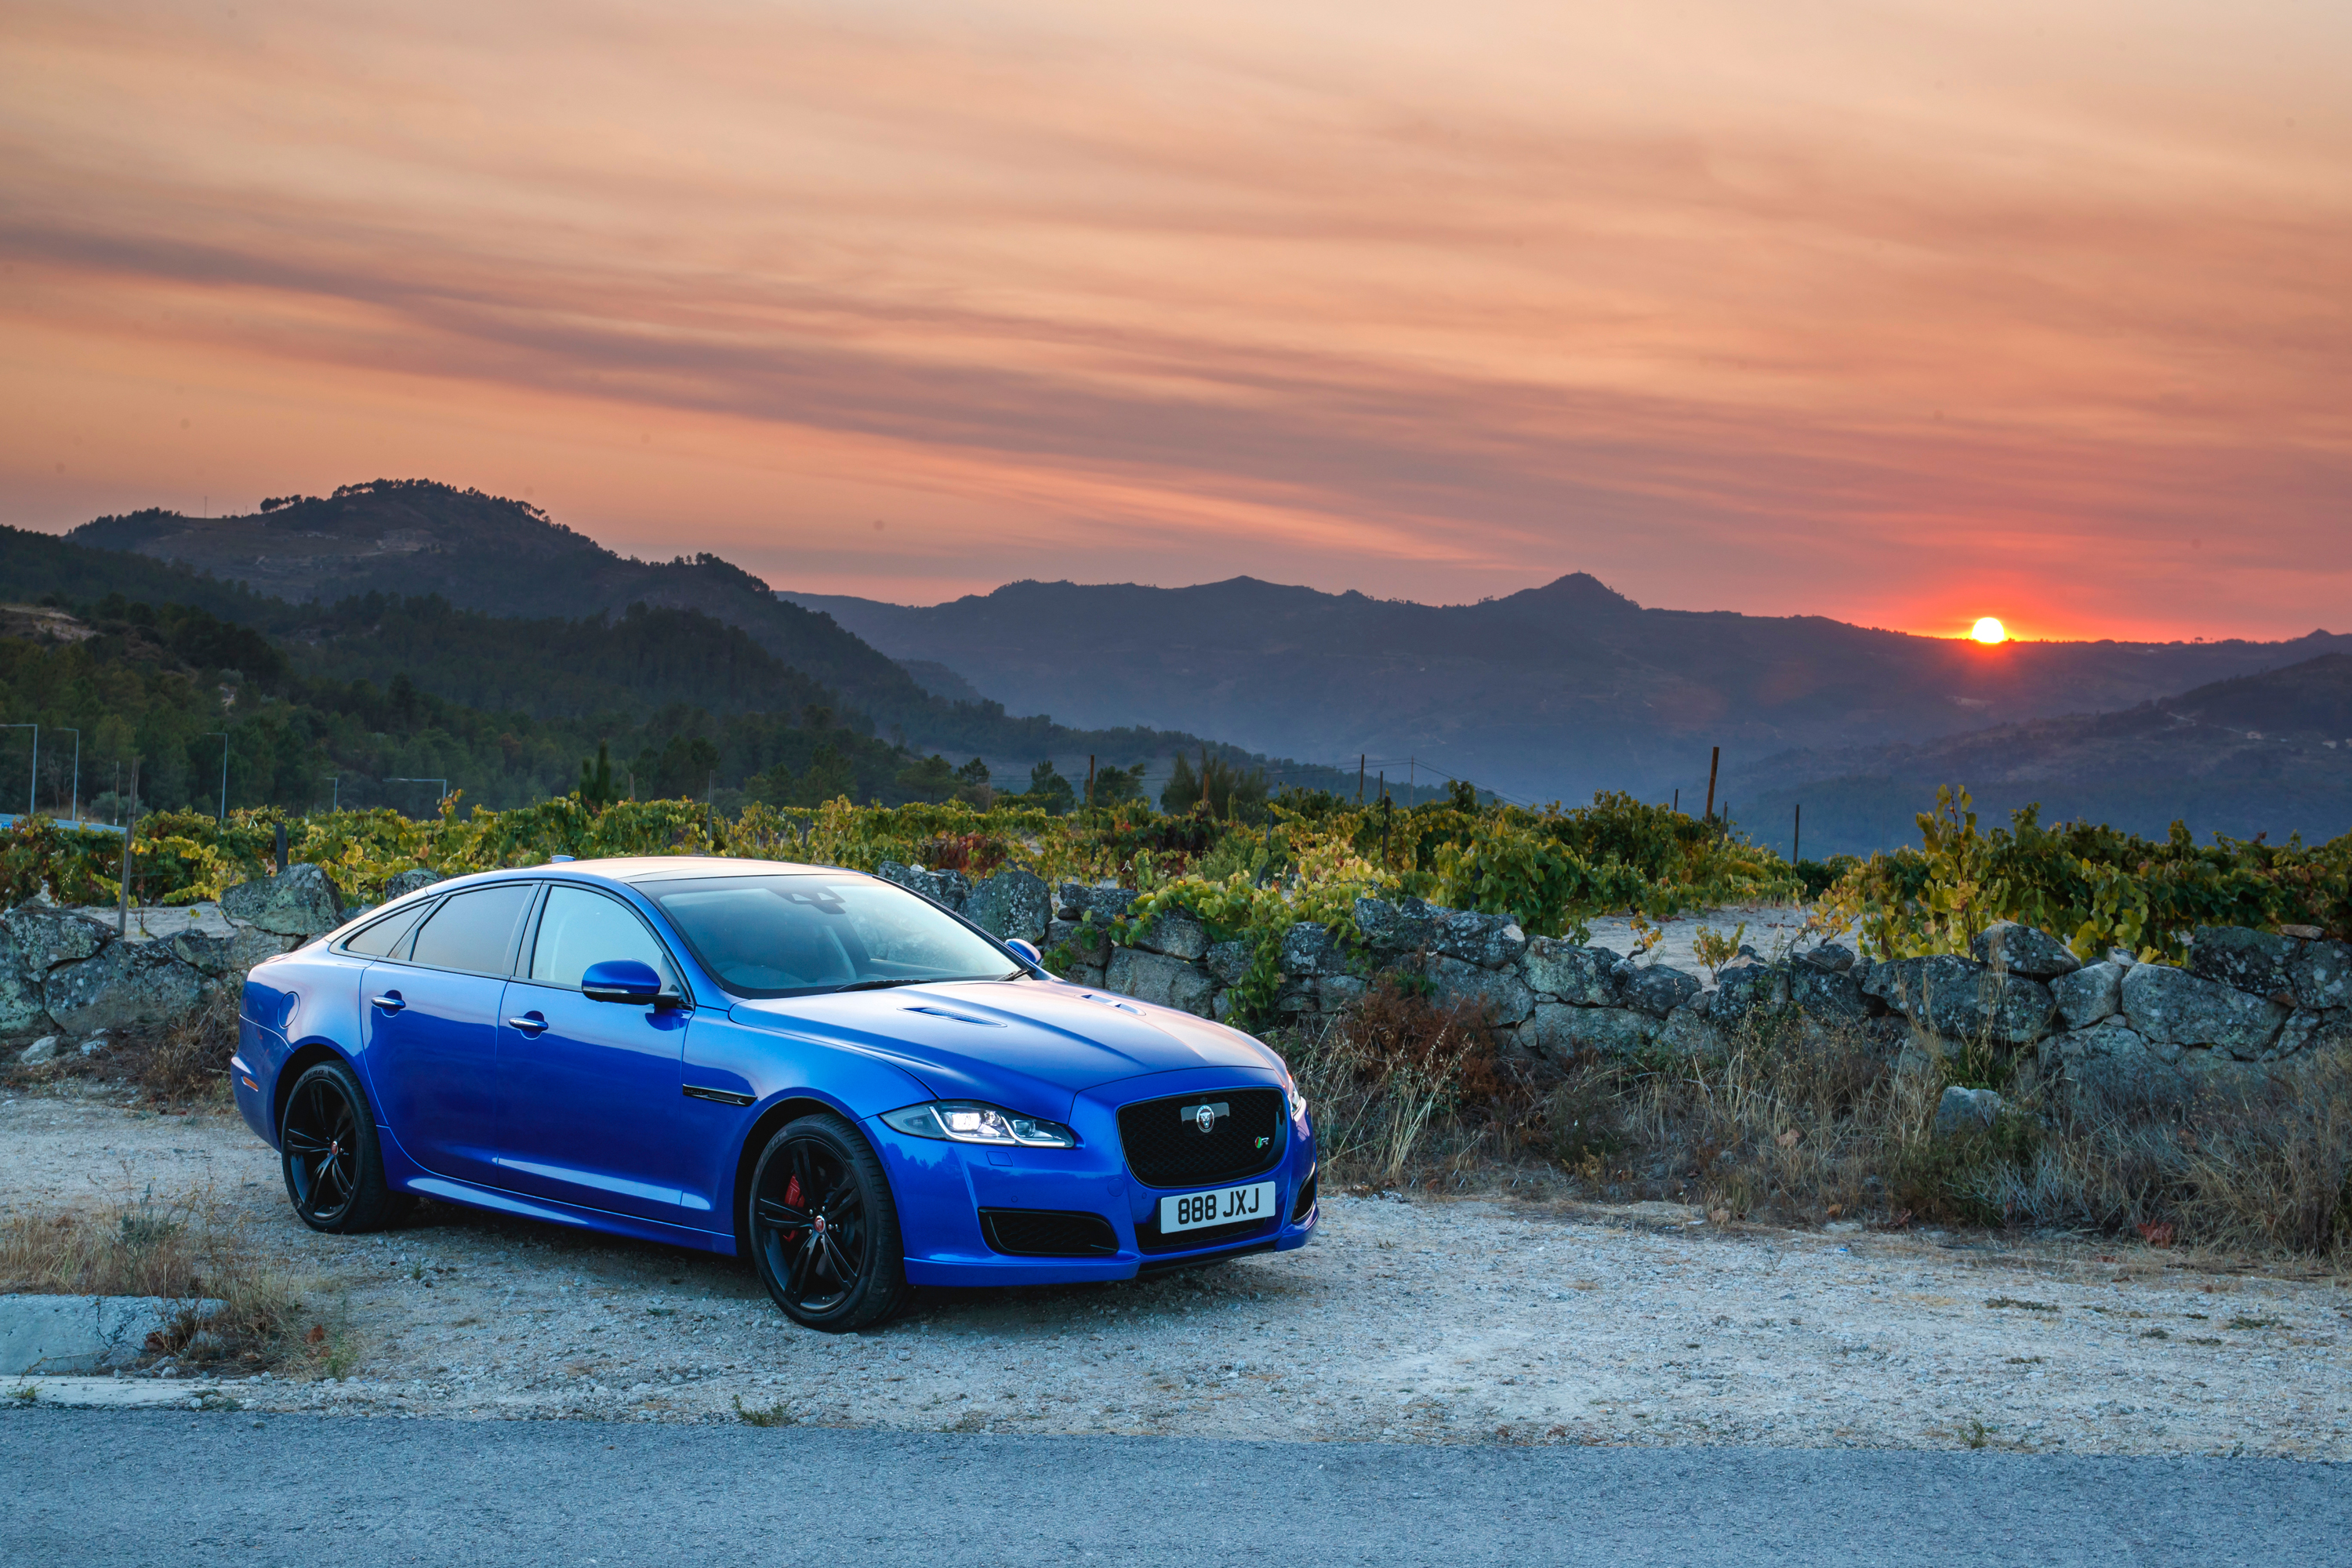 Wallpaper Of The Day: 2018 Jaguar XJR575 Pictures, Photos